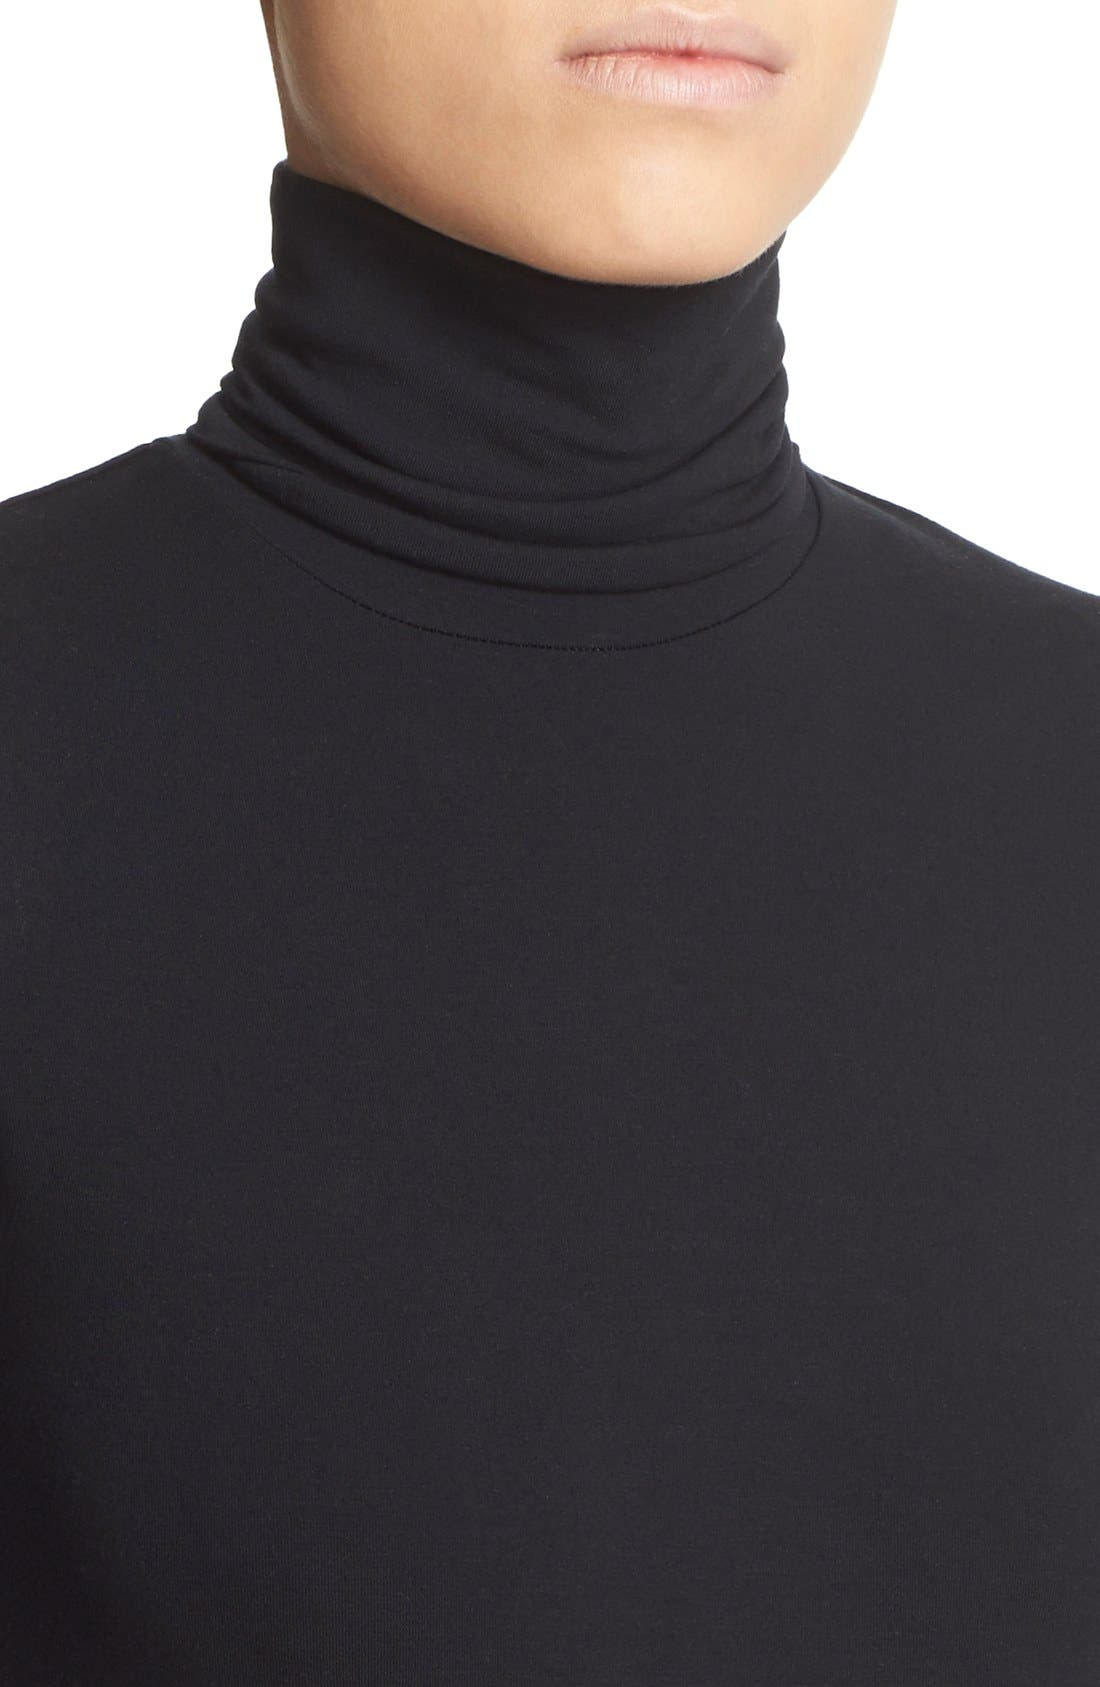 Turtleneck,                             Alternate thumbnail 7, color,                             NOIR